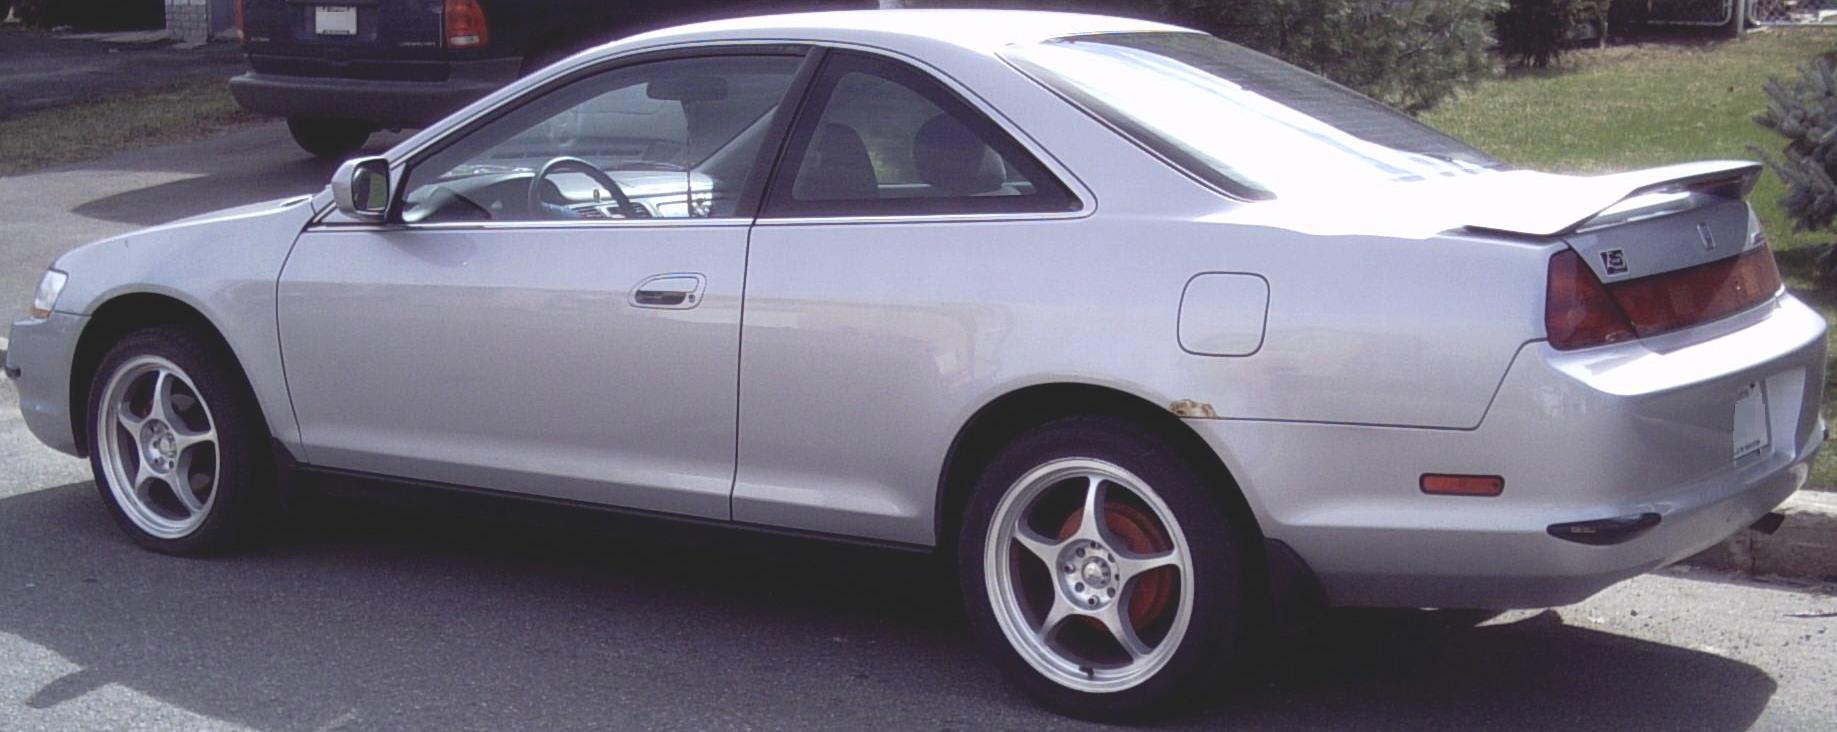 File:Accord Coupe 1998 2002.JPG